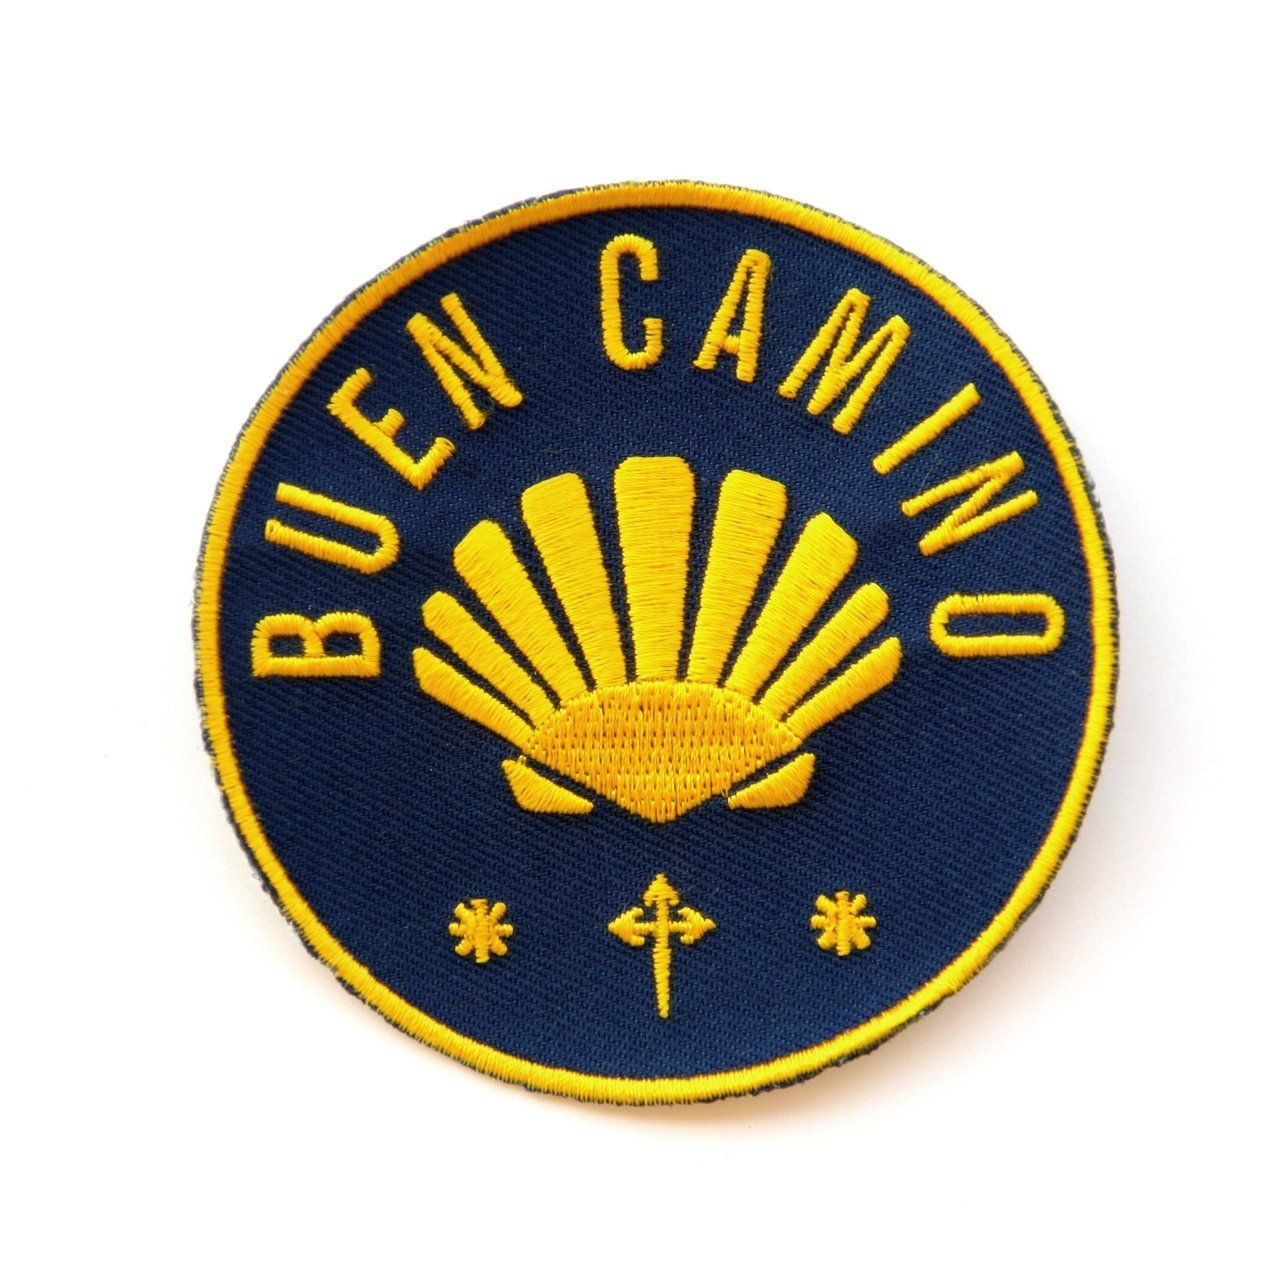 Image result for camino de santiago shell symbol